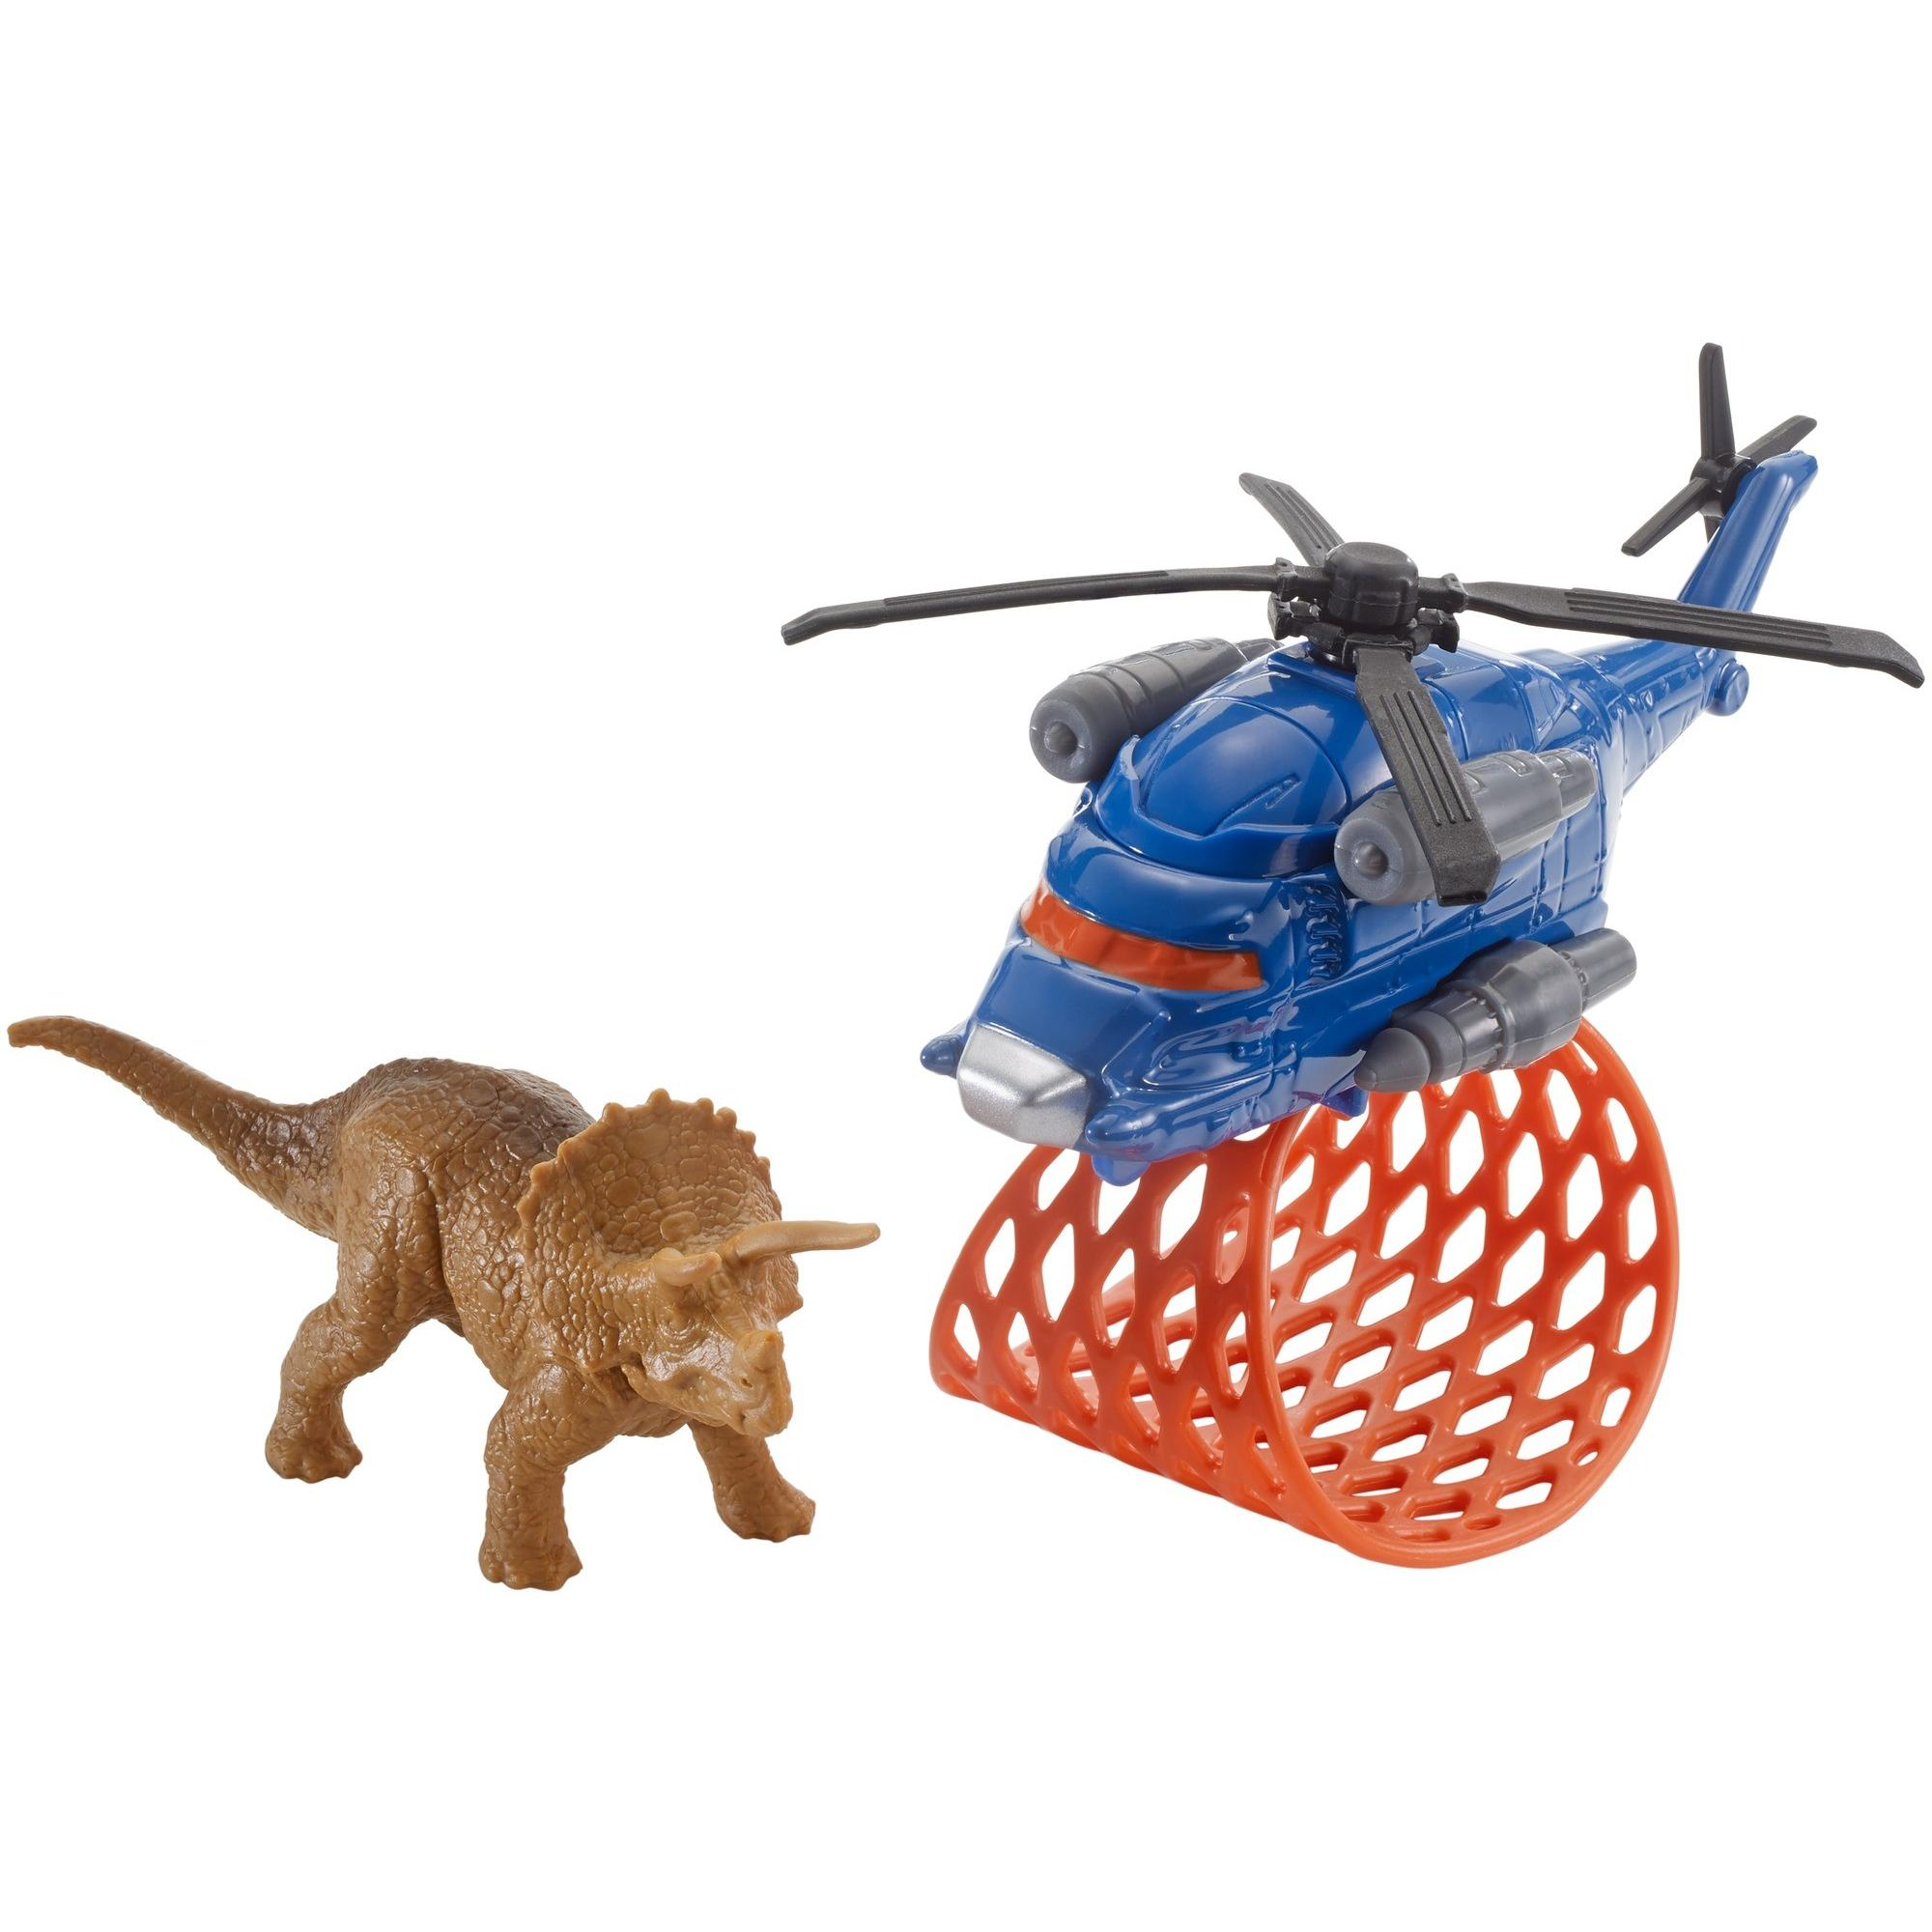 Matchbox Jurassic World Dino Transporters Tricera-copter Vehicle and Figure by Mattel